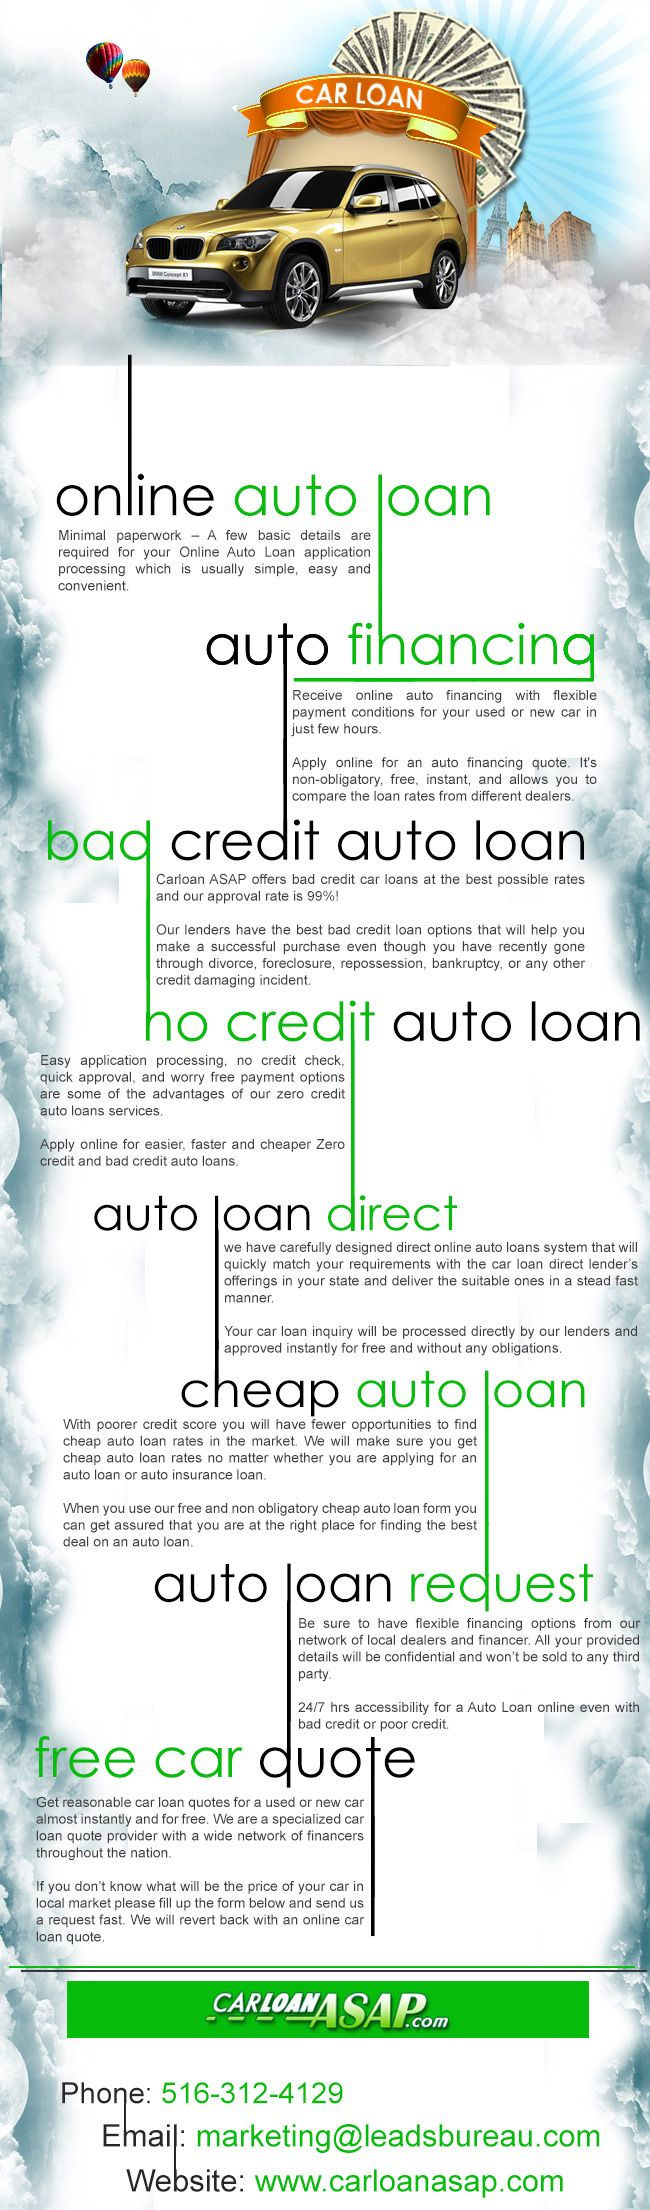 Get online car loan for new cars used cars or refinance with bad credit